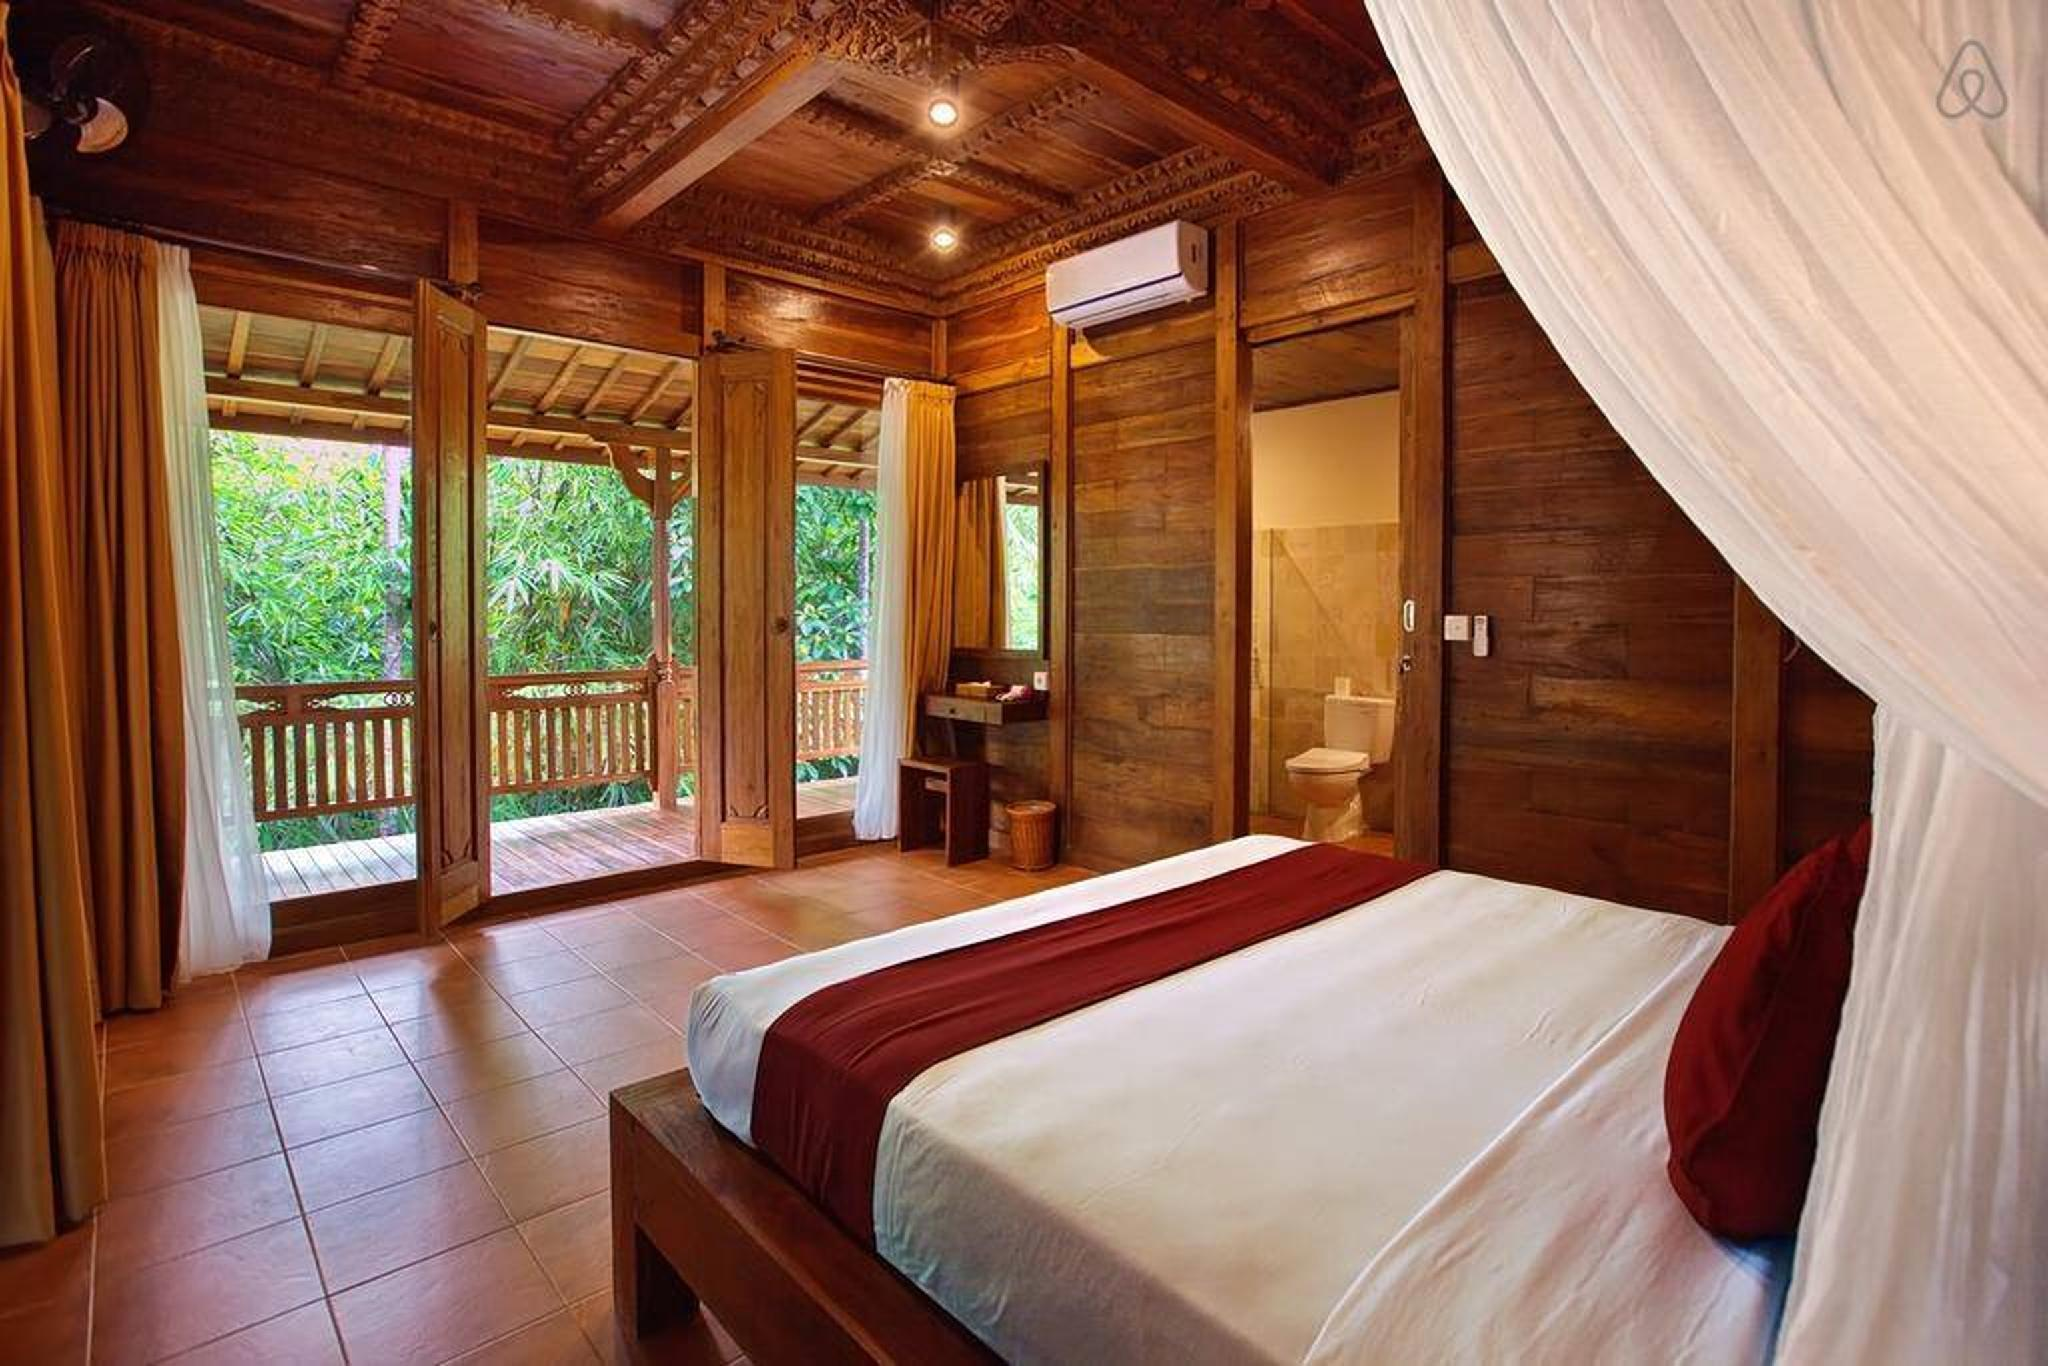 Price 1 BDR Pool Villa Ubud in Sayan